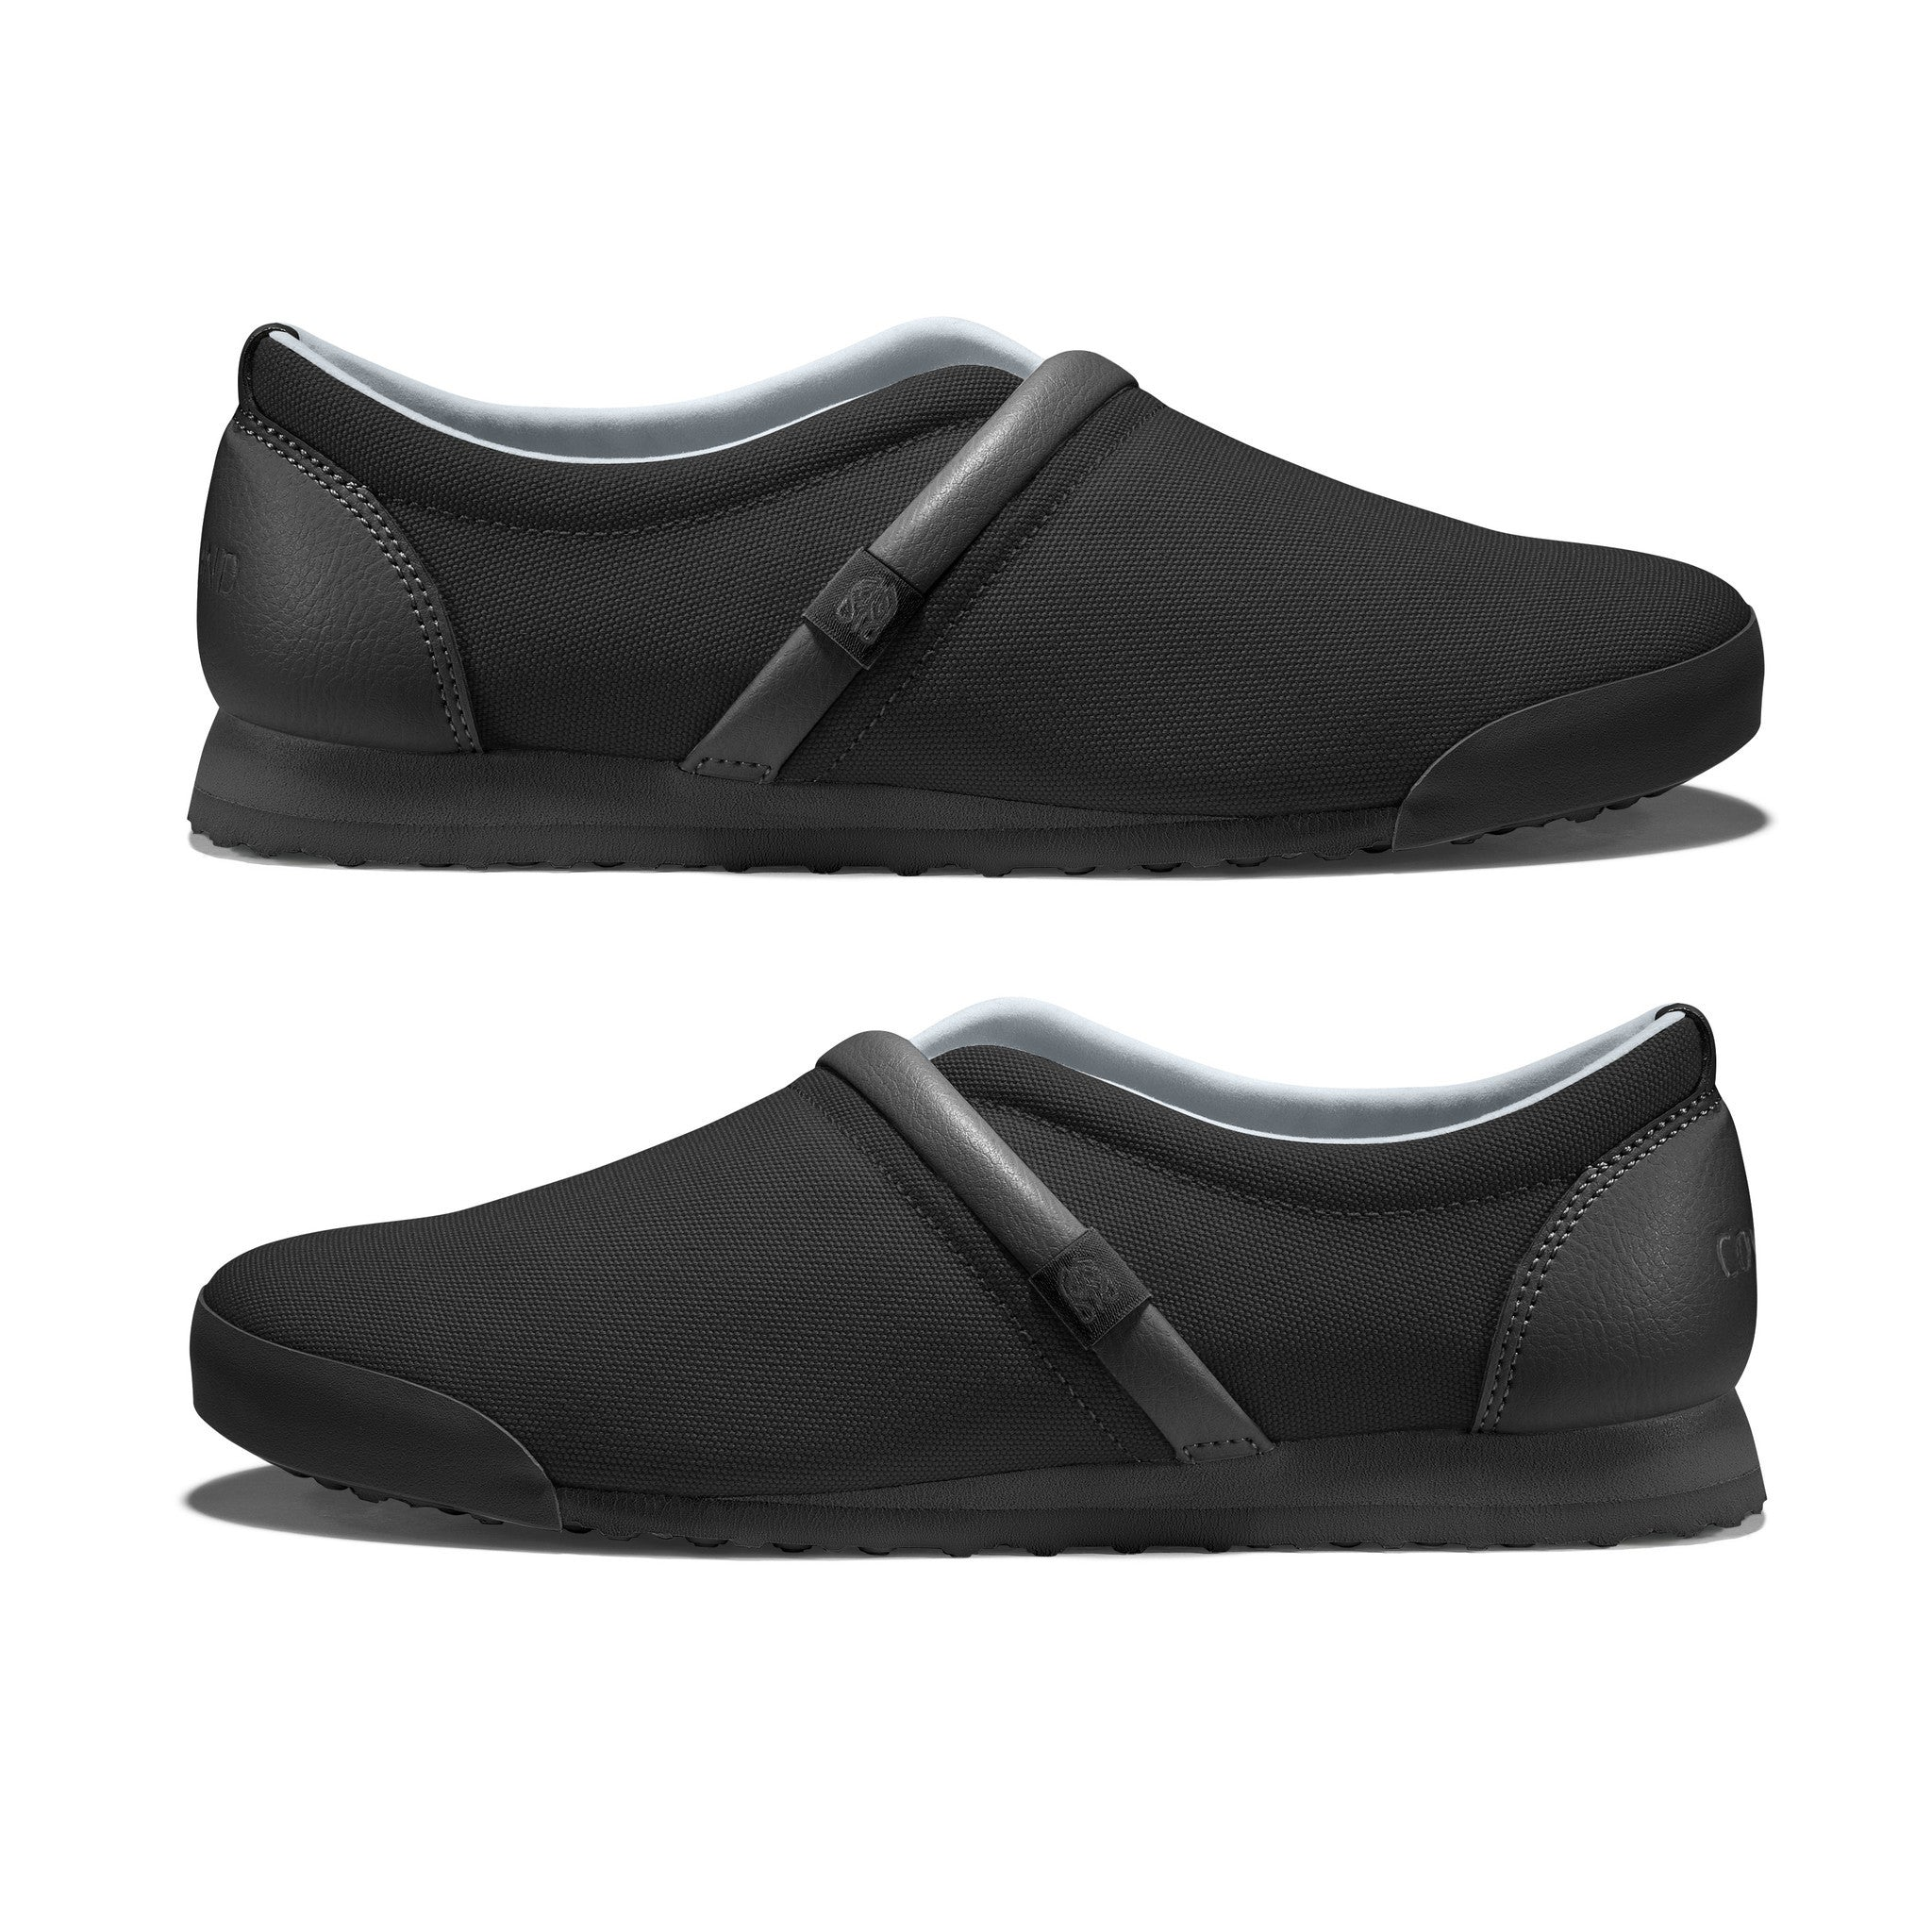 Jet_Black - Common Ground Footwear Shoes Side View